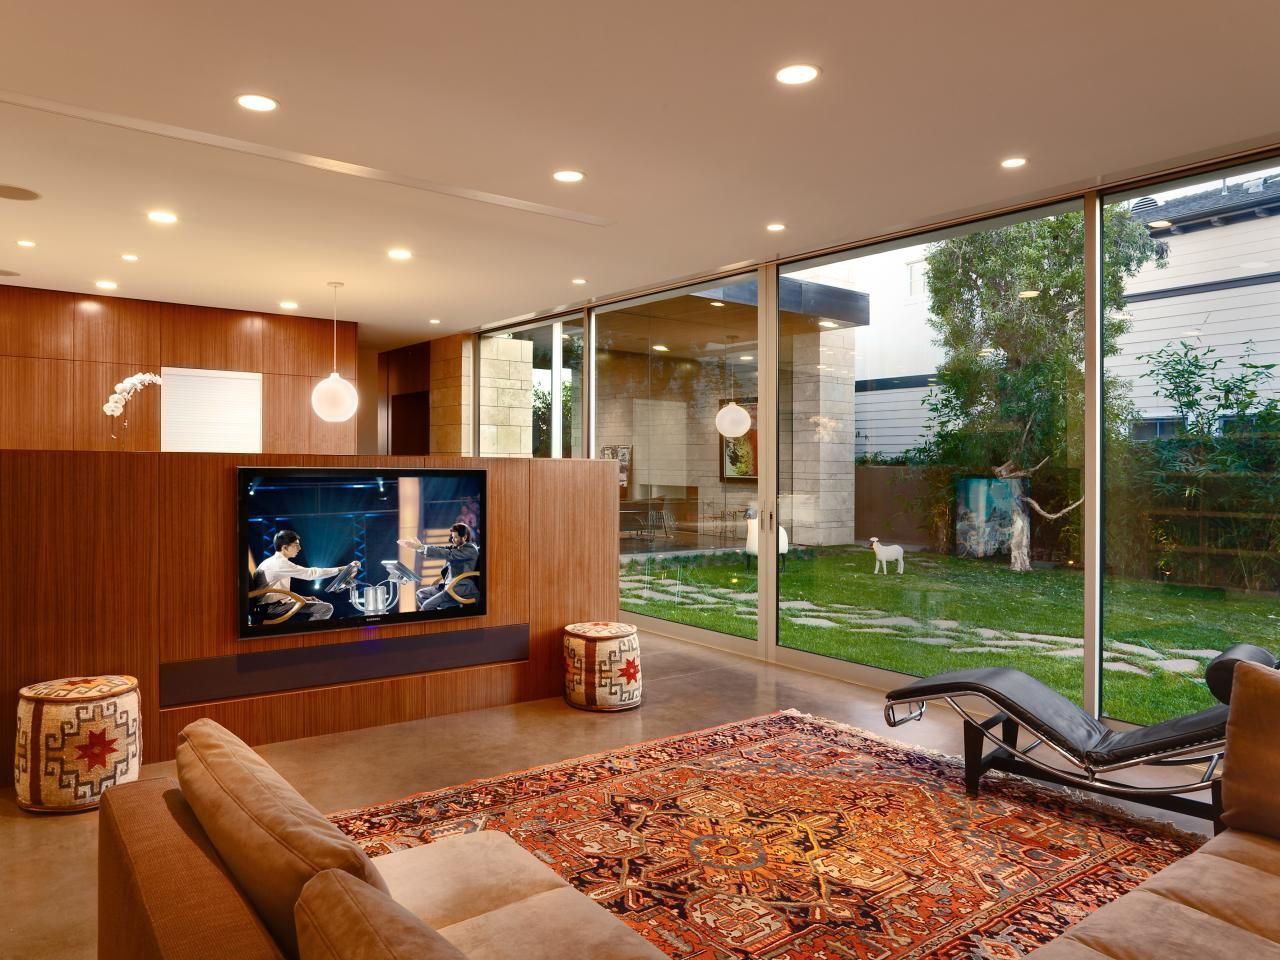 Basement Home Theaters And Media Rooms Pictures Tips Ideas Media Room Design Home Theater Design Home